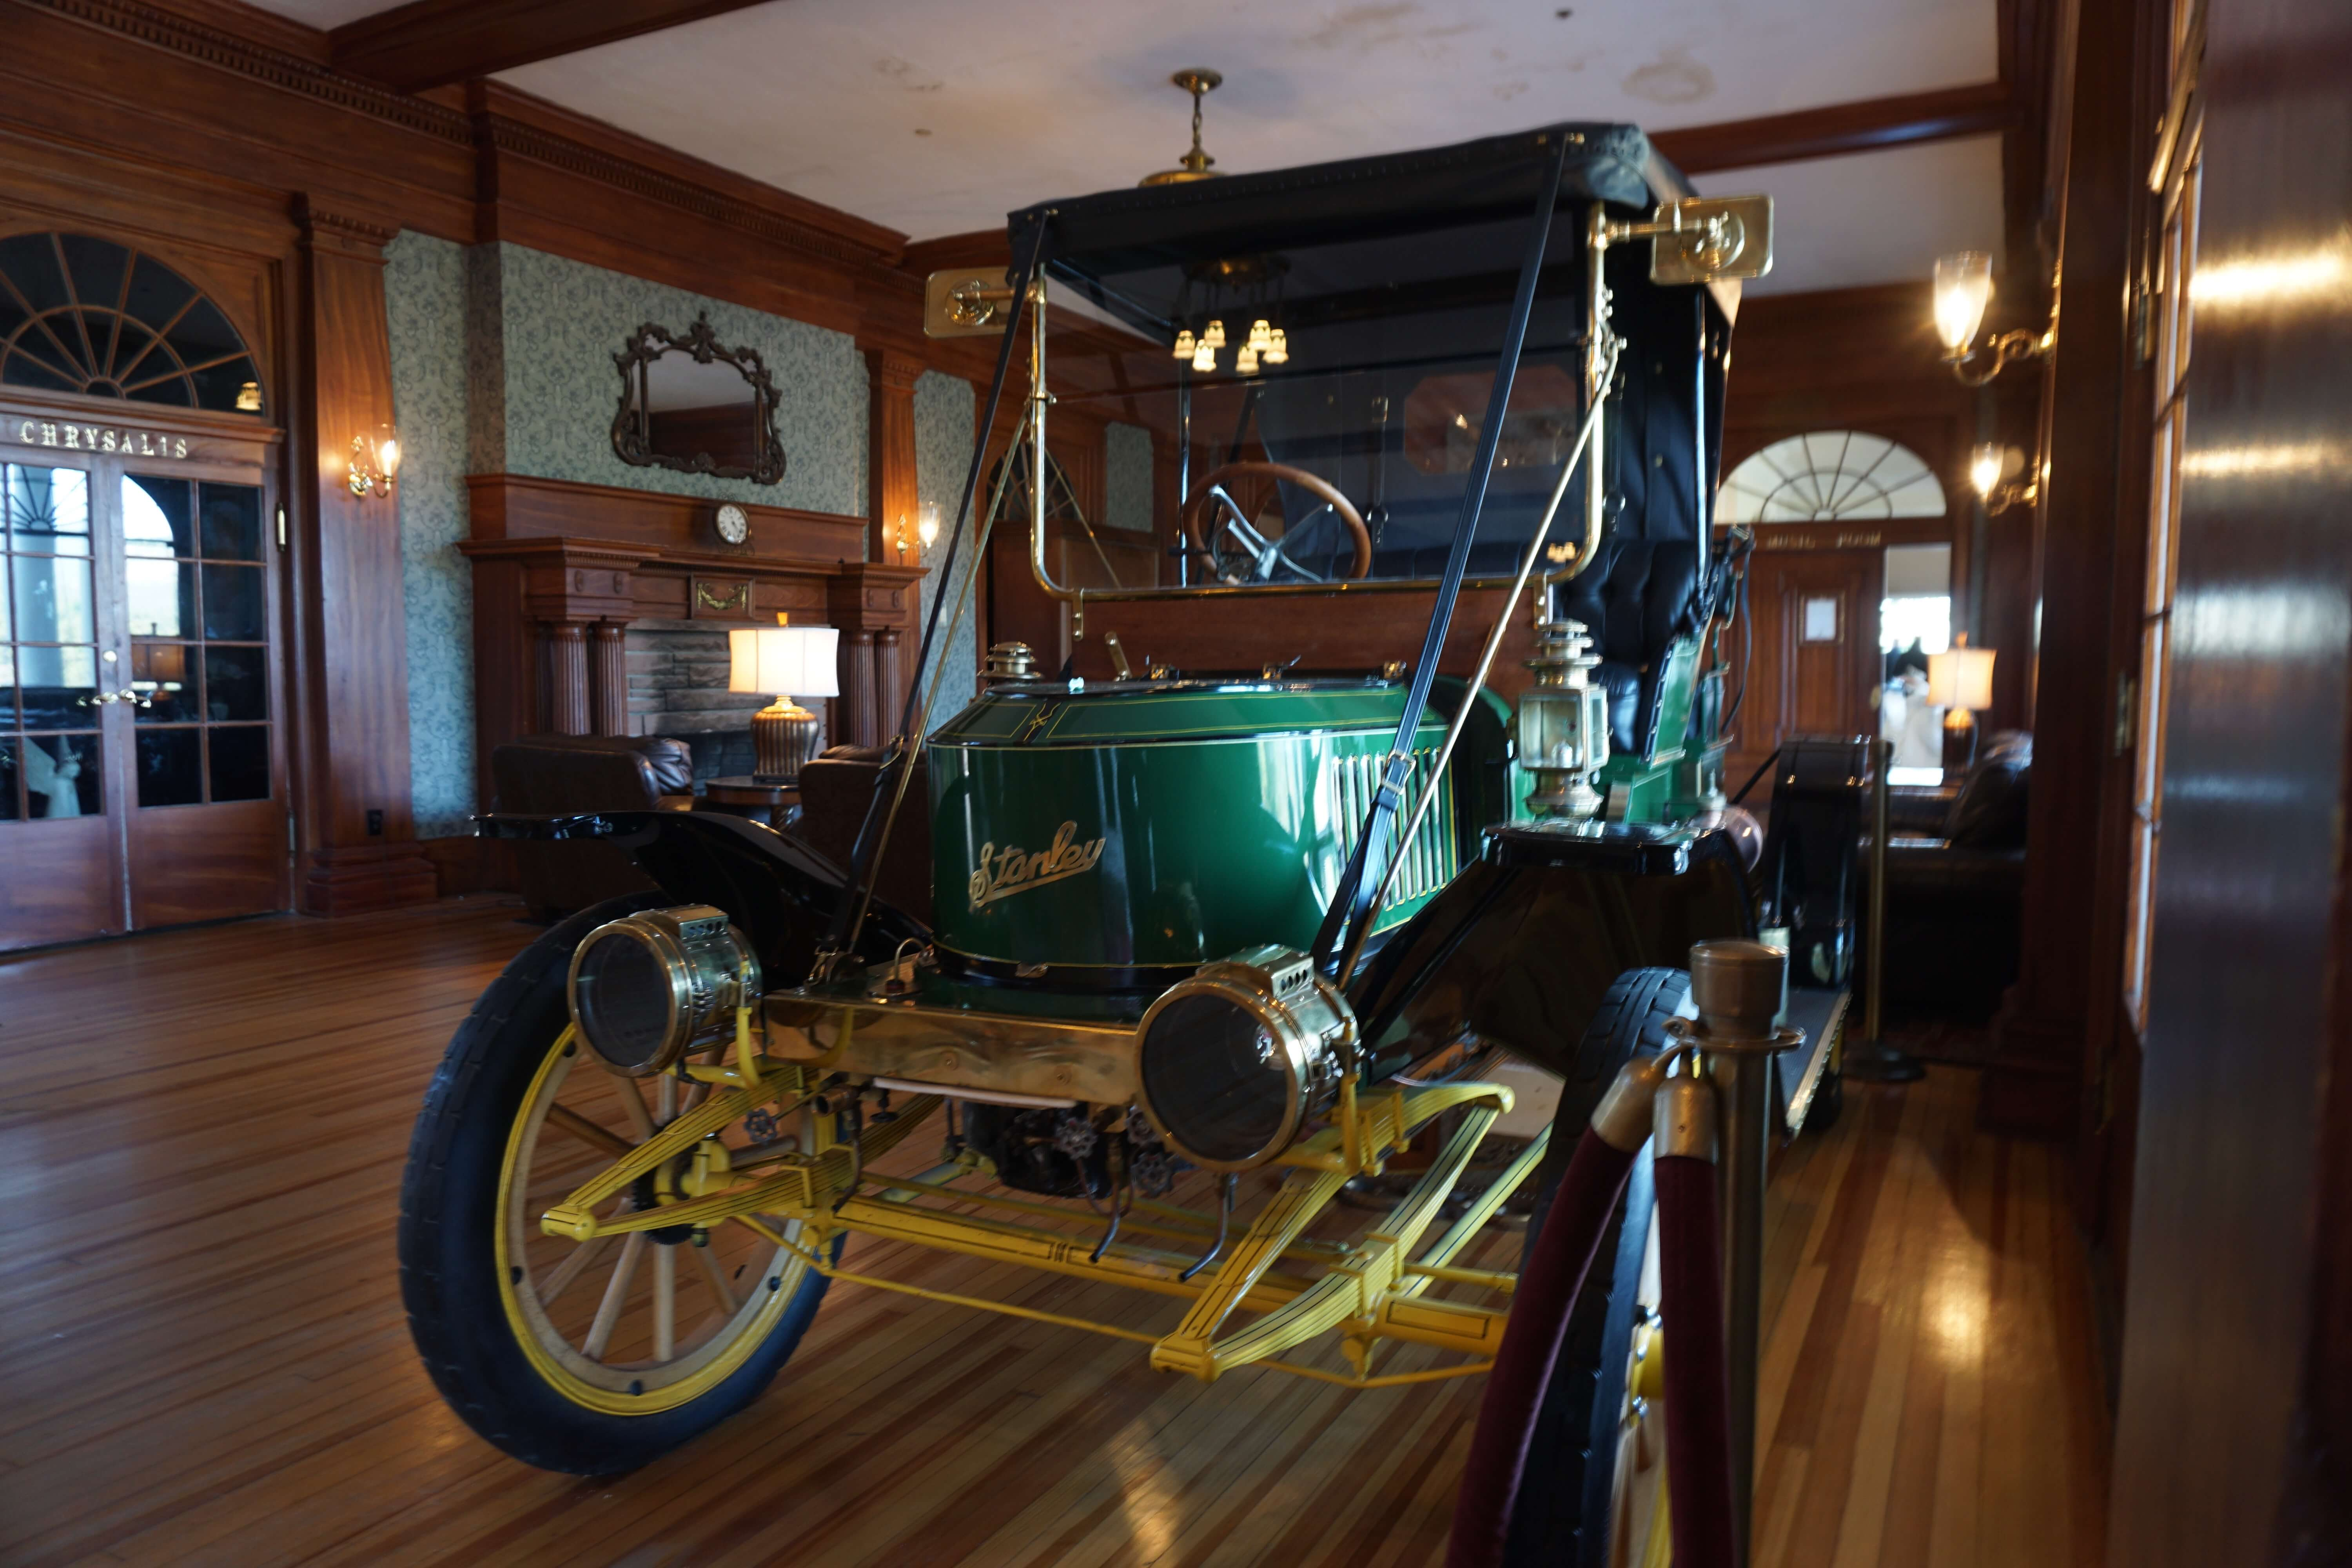 A Stanley Steamer in the hotel lobby